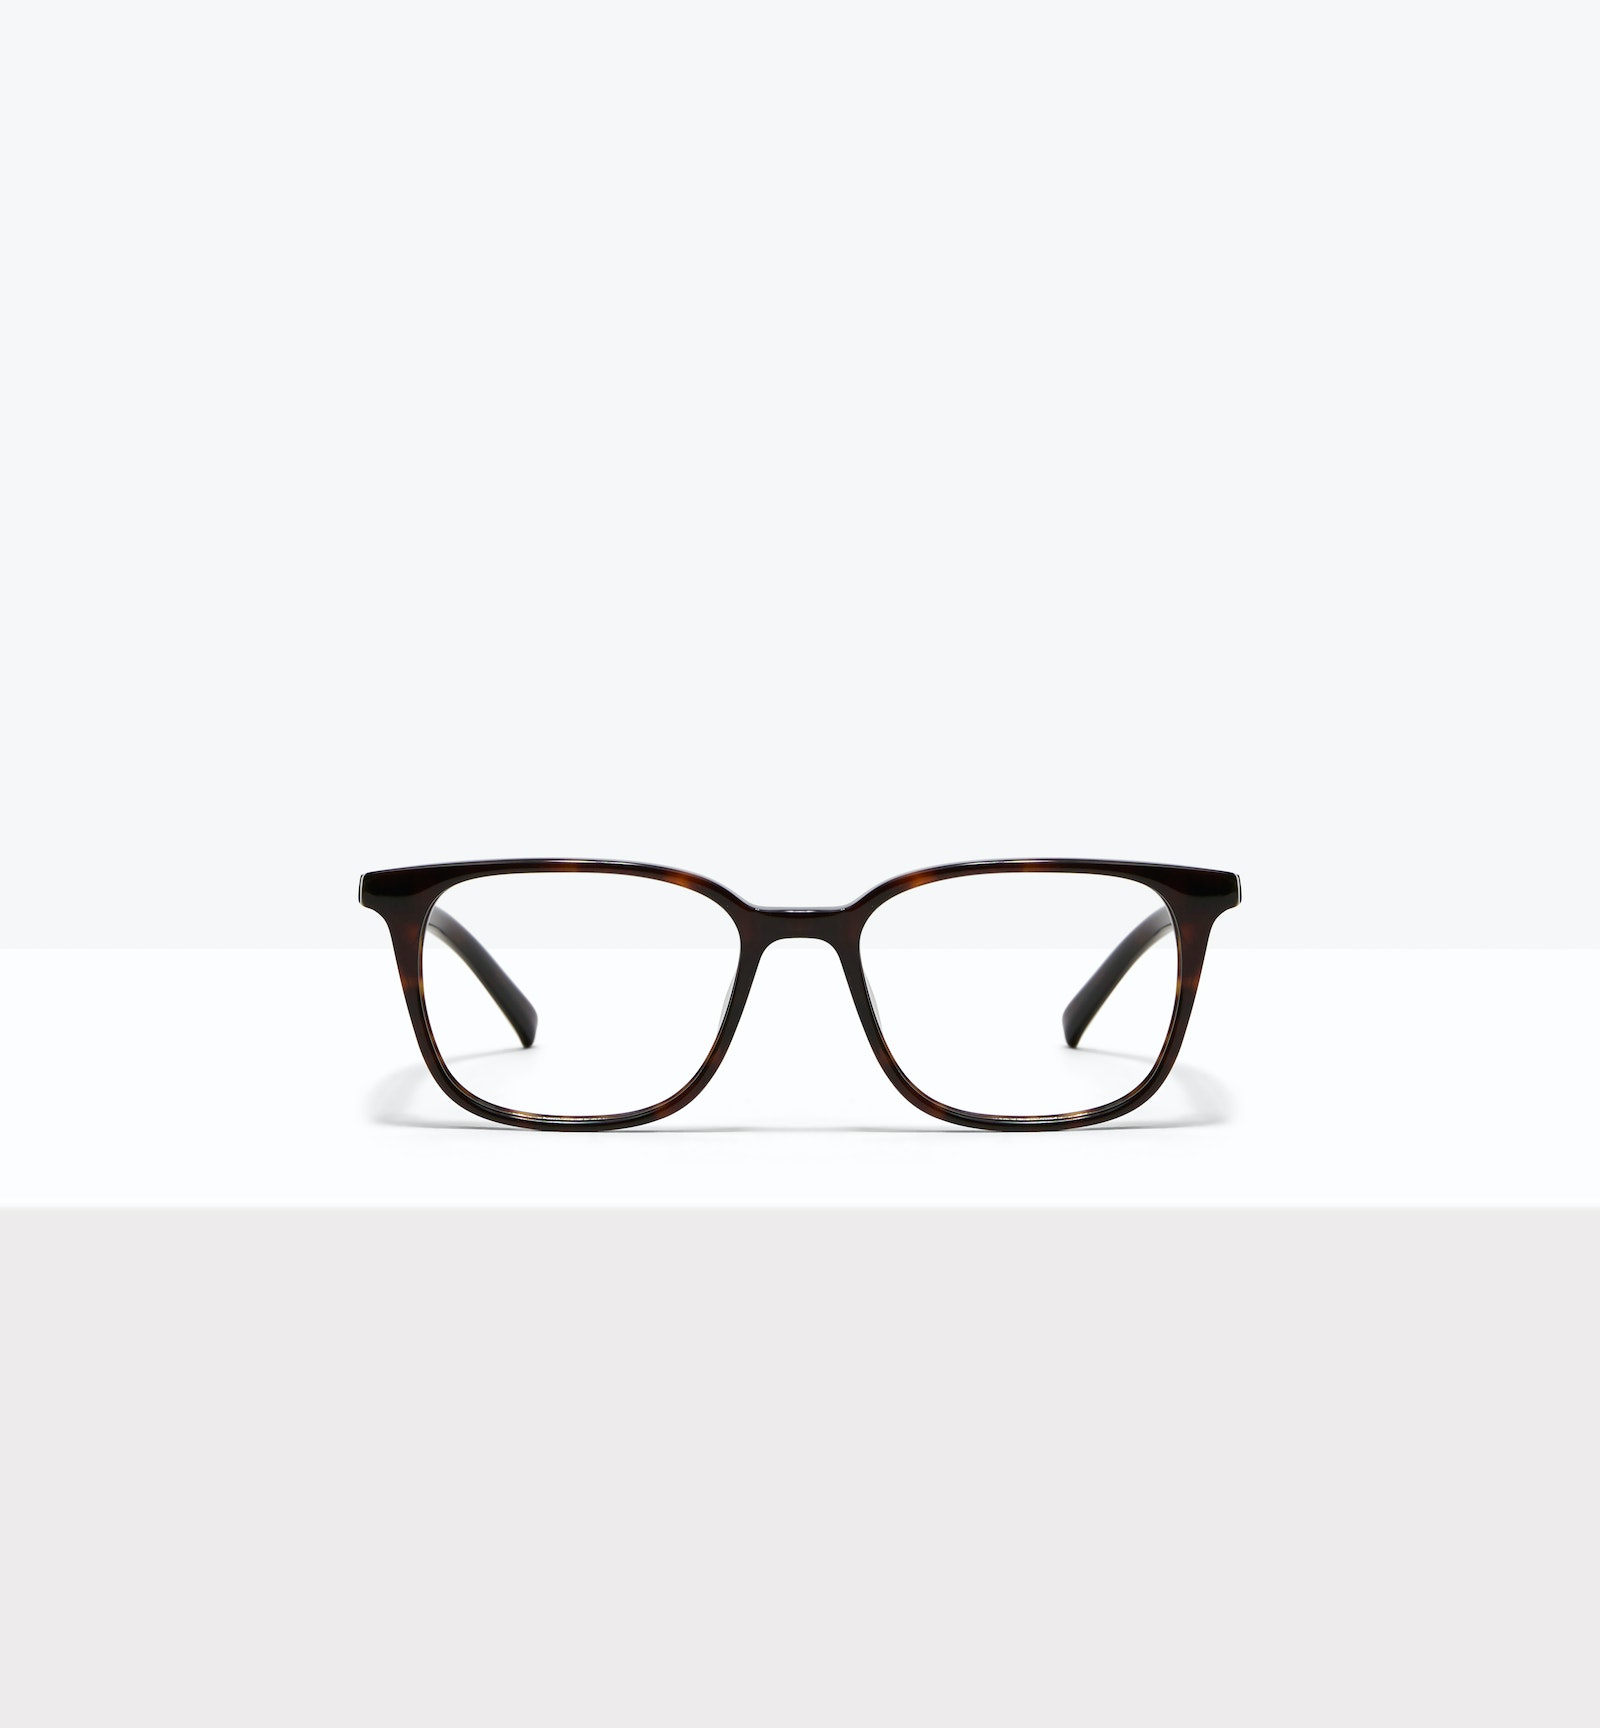 Affordable Fashion Glasses Square Eyeglasses Men Choice Tortoise